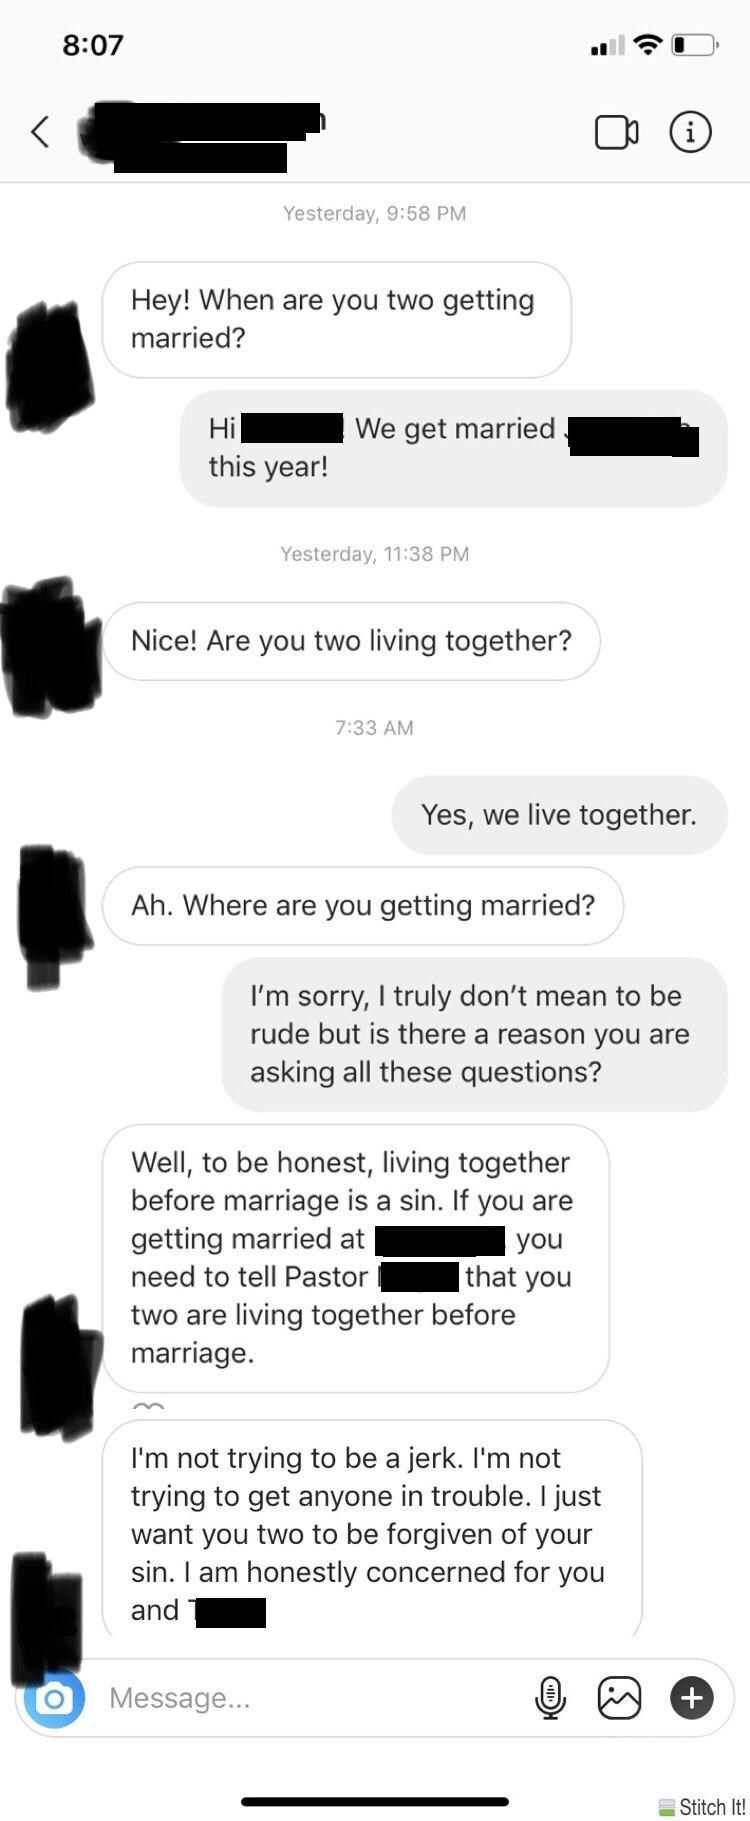 Text - 8:07 Yesterday, 9:58 PM Hey! When are you two getting married? Hi We get married this year! Yesterday, 11:38 PM Nice! Are you two living together? 7:33 AM Yes, we live together. Ah. Where are you getting married? I'm sorry, I truly don't mean to be rude but is there a reason you are asking all these questions? Well, to be honest, living together before marriage is a sin. If you are getting married at you that you need to tell Pastor two are living together before marriage I'm not trying t